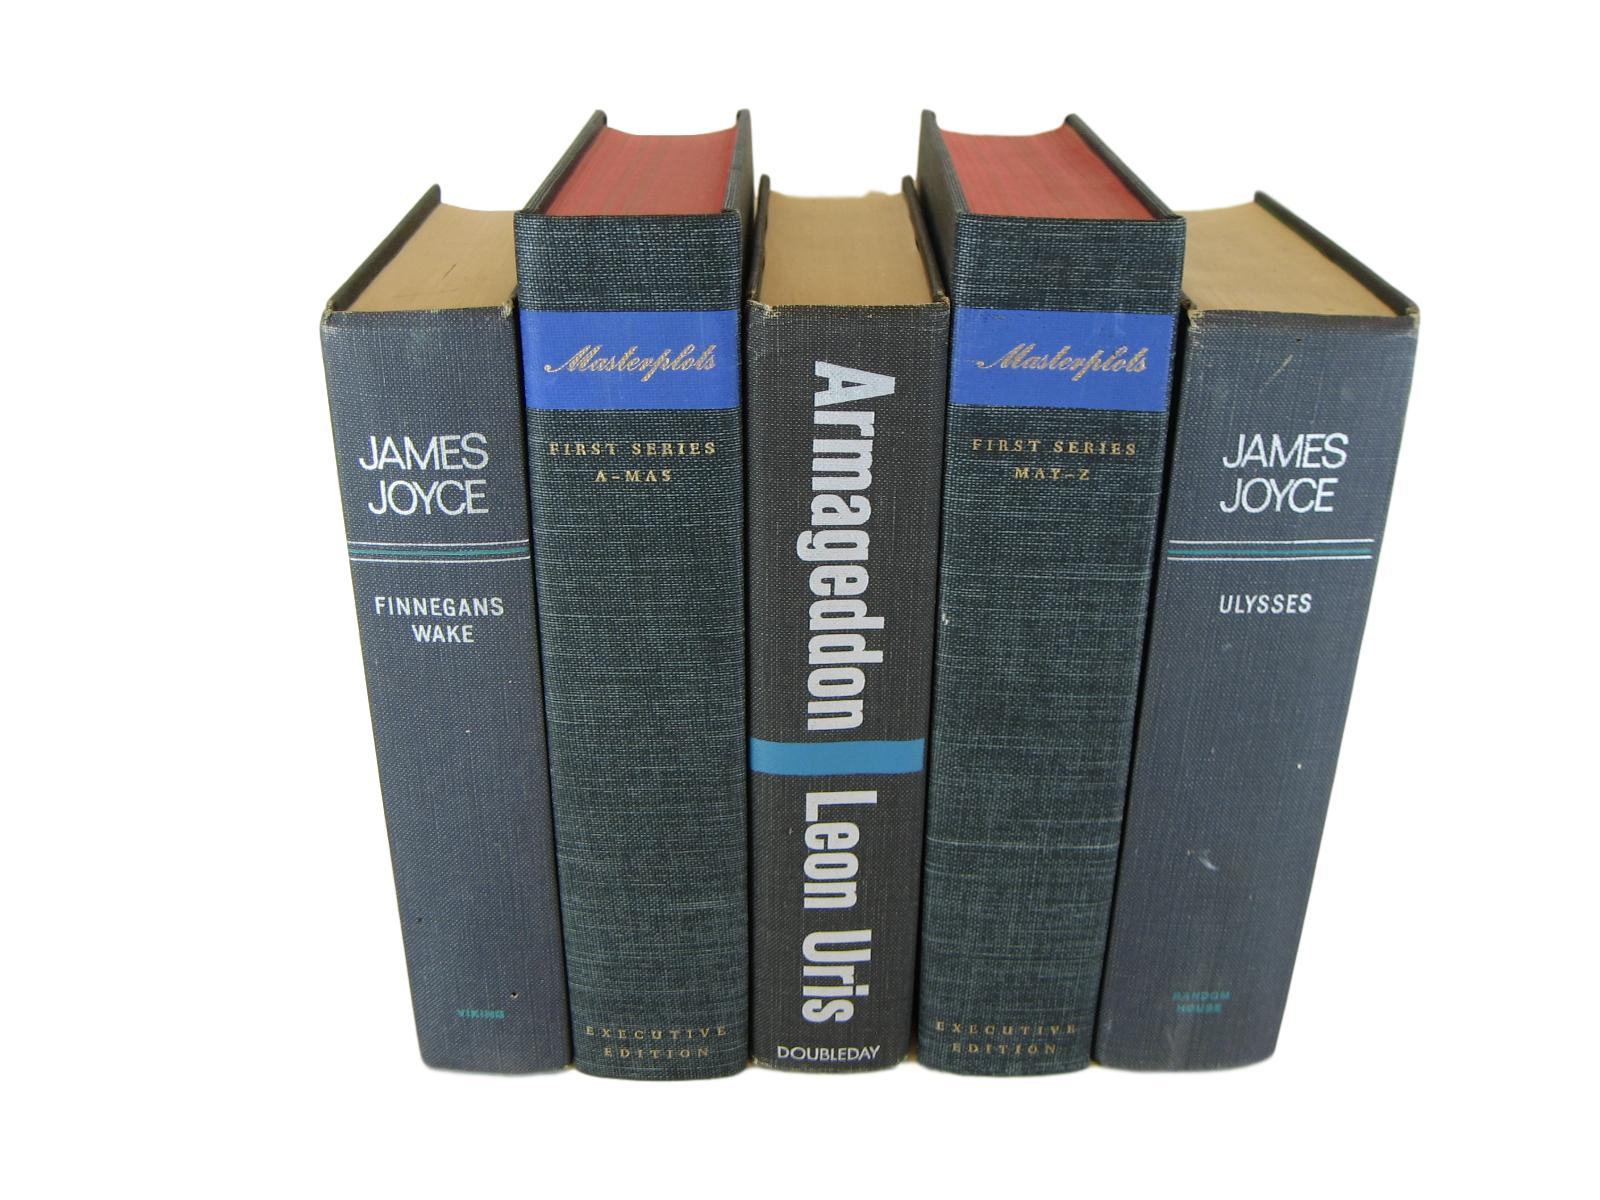 Gray Decorative  Books for Bookshelf Ideas, S/5 - Decades of Vintage